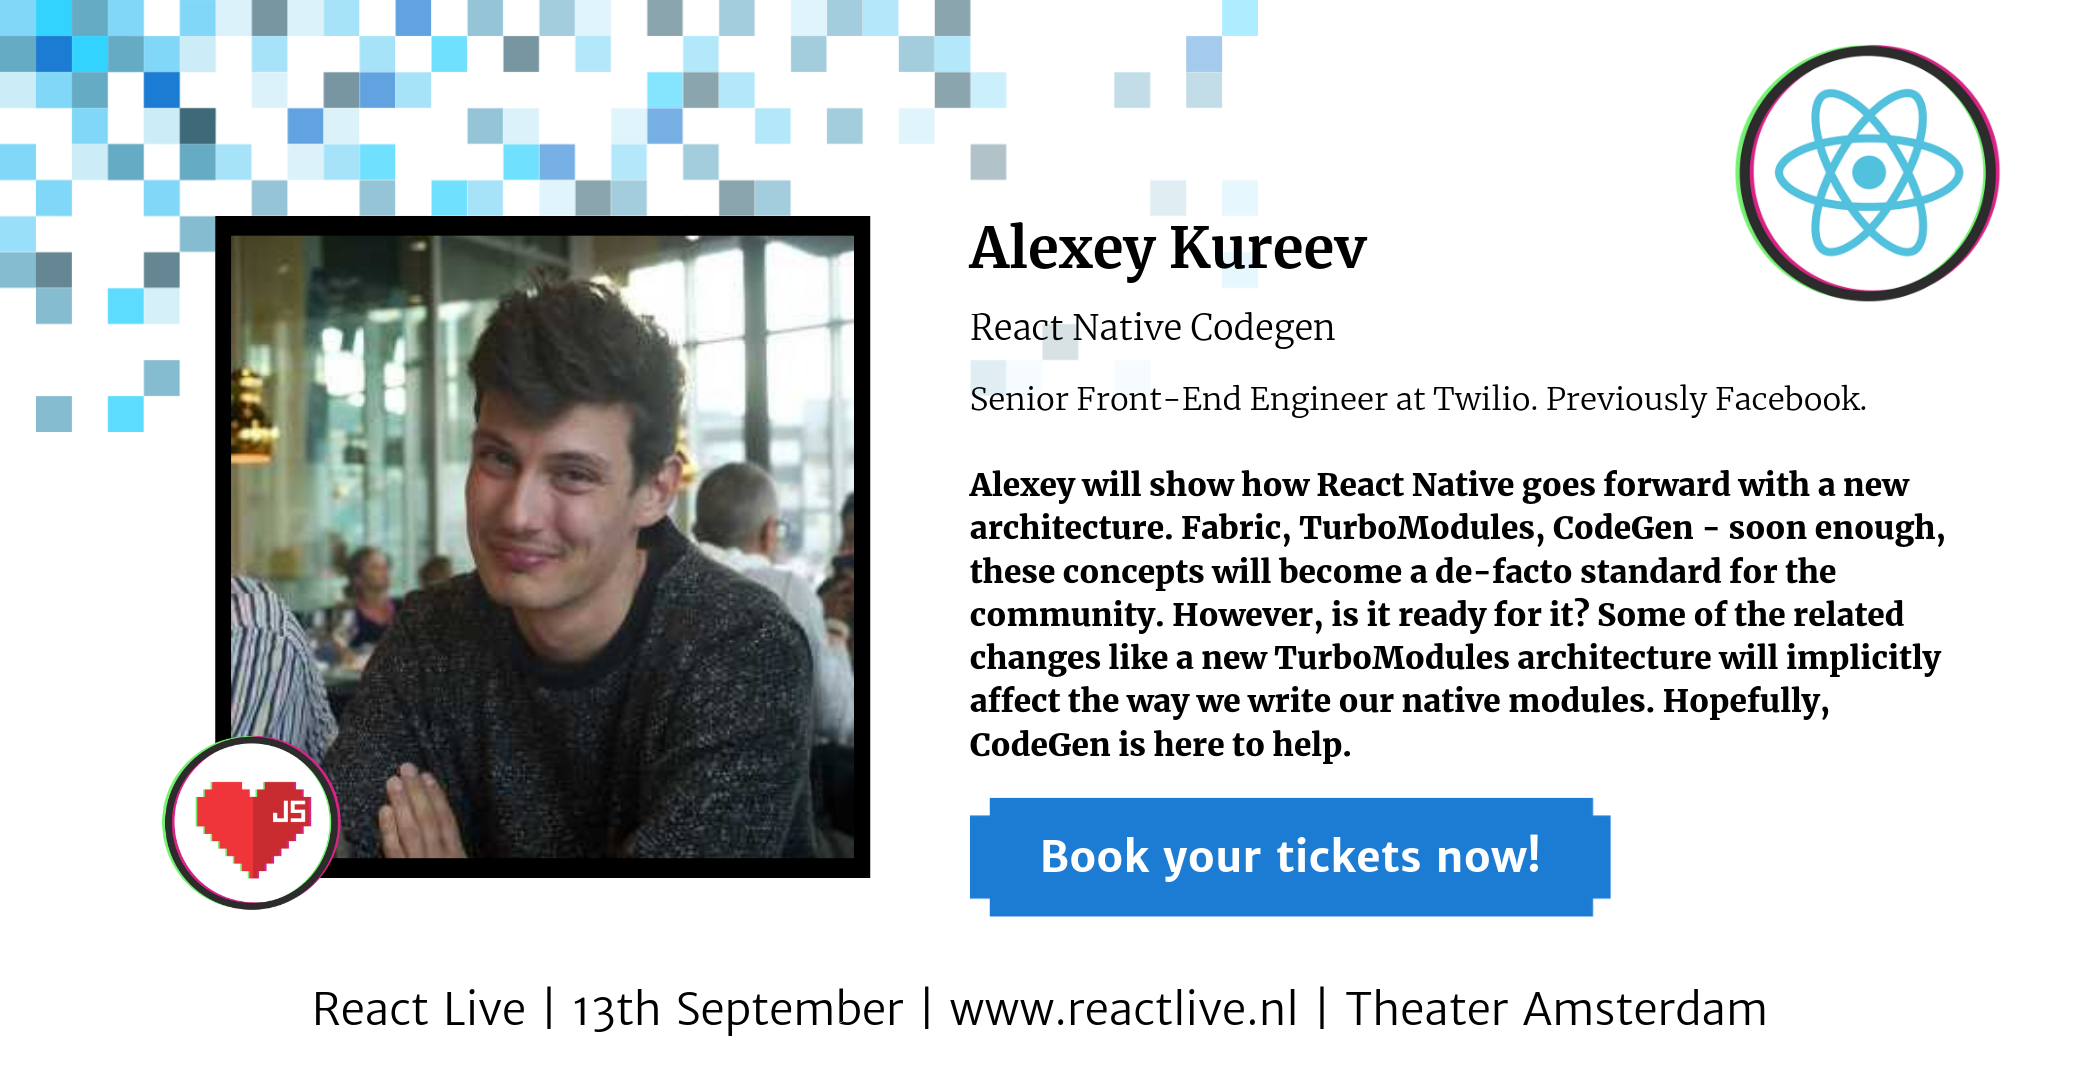 Alexey Kureev at React Live